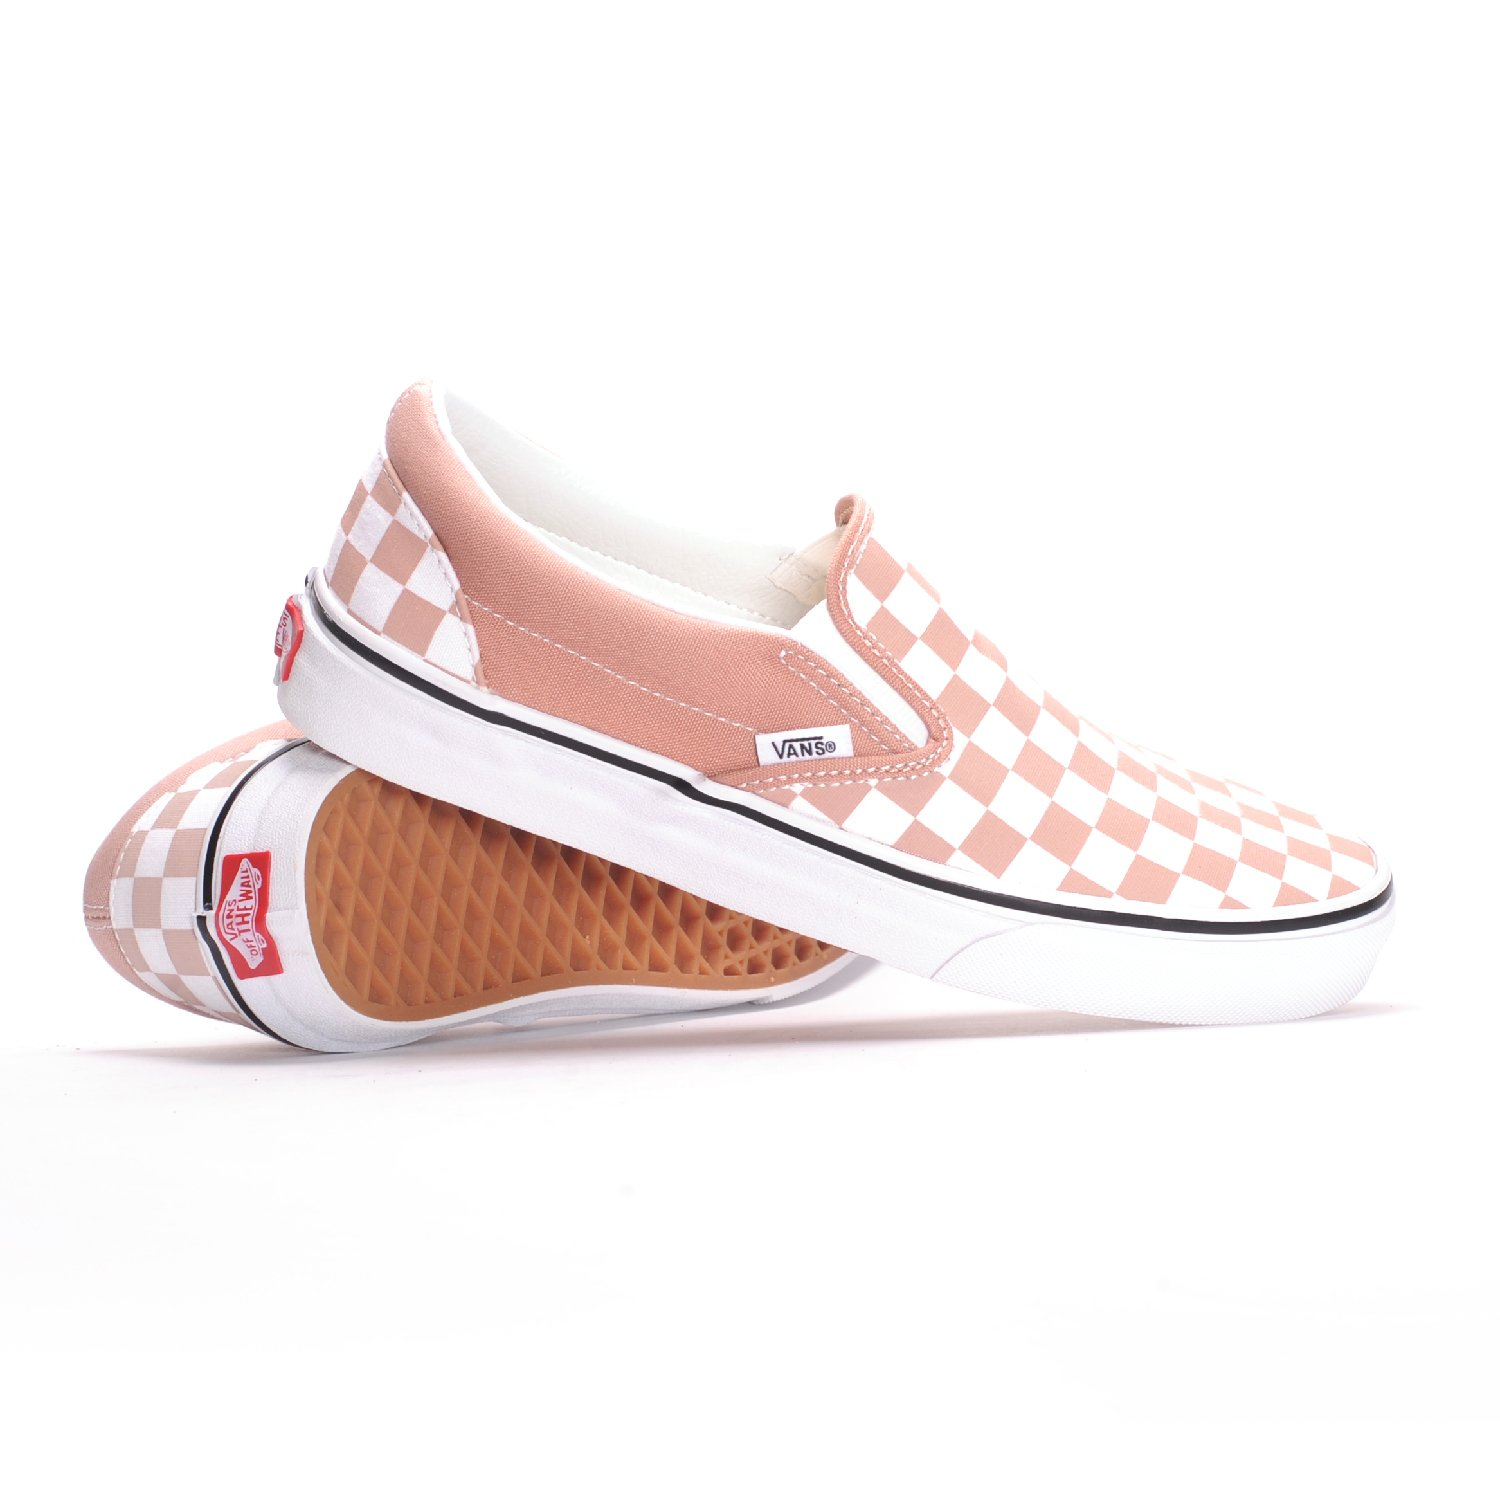 bed07feac0c3 Galleon - Vans Unisex Checkerboard Slip-On Mahogany Rose True White Sneaker  - 8